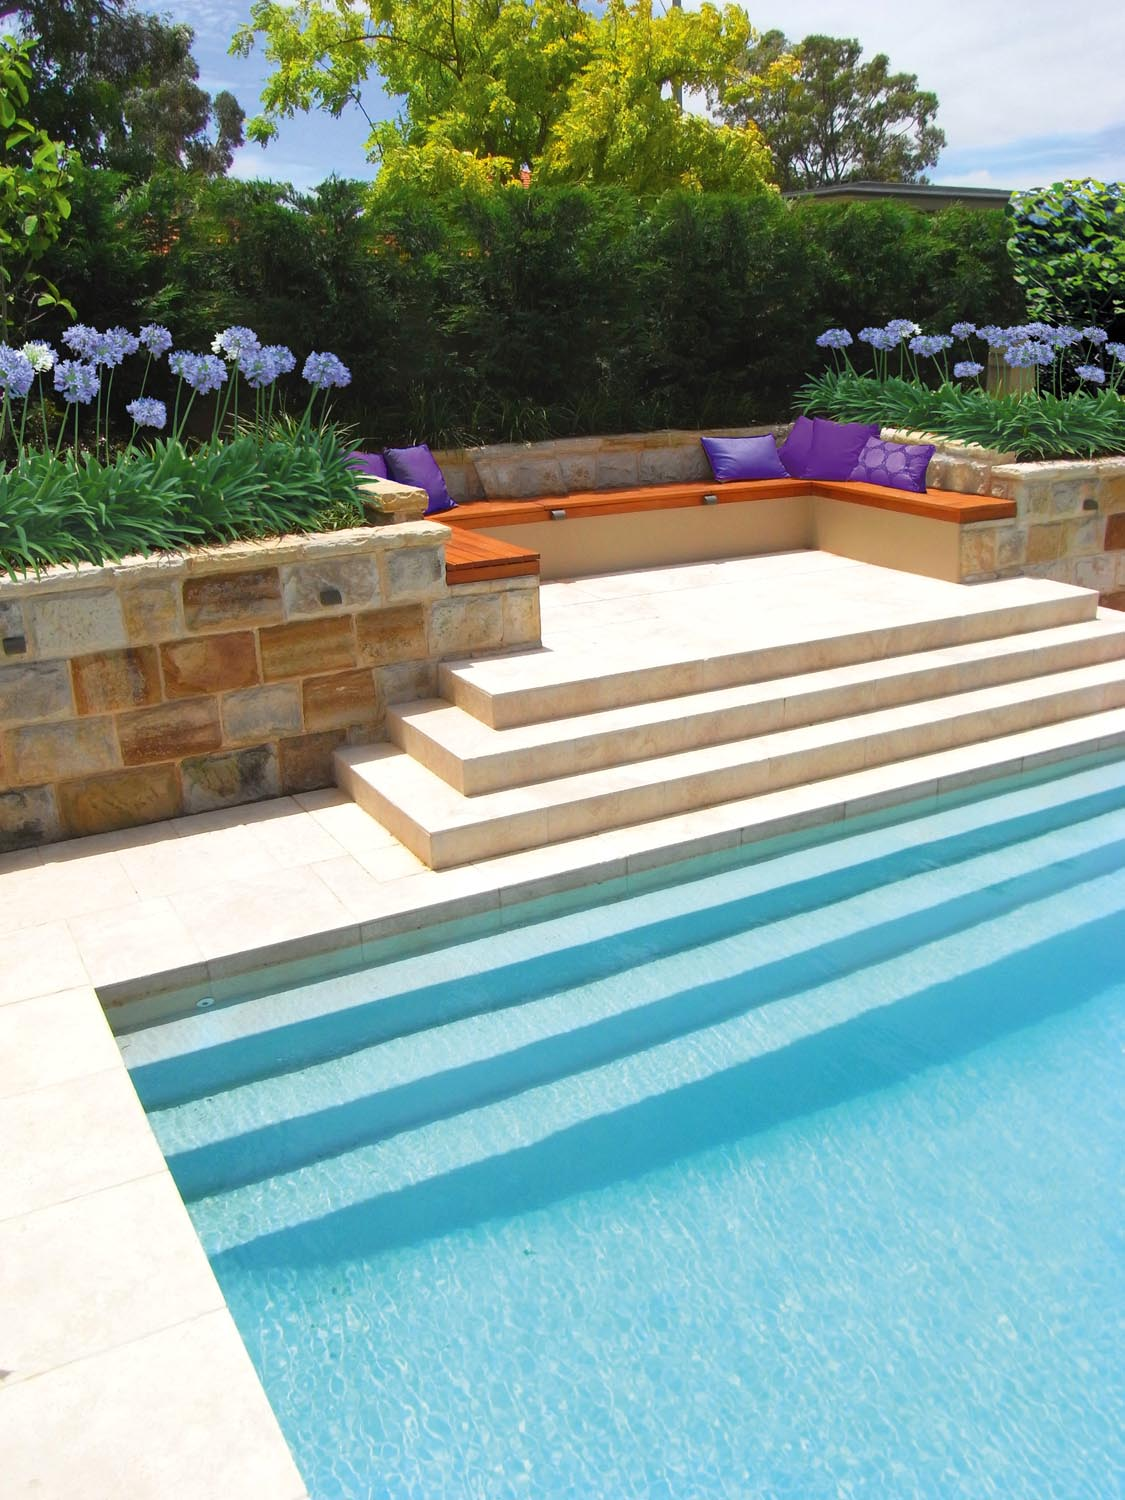 Modern pool corner with sandstone wall and flowers